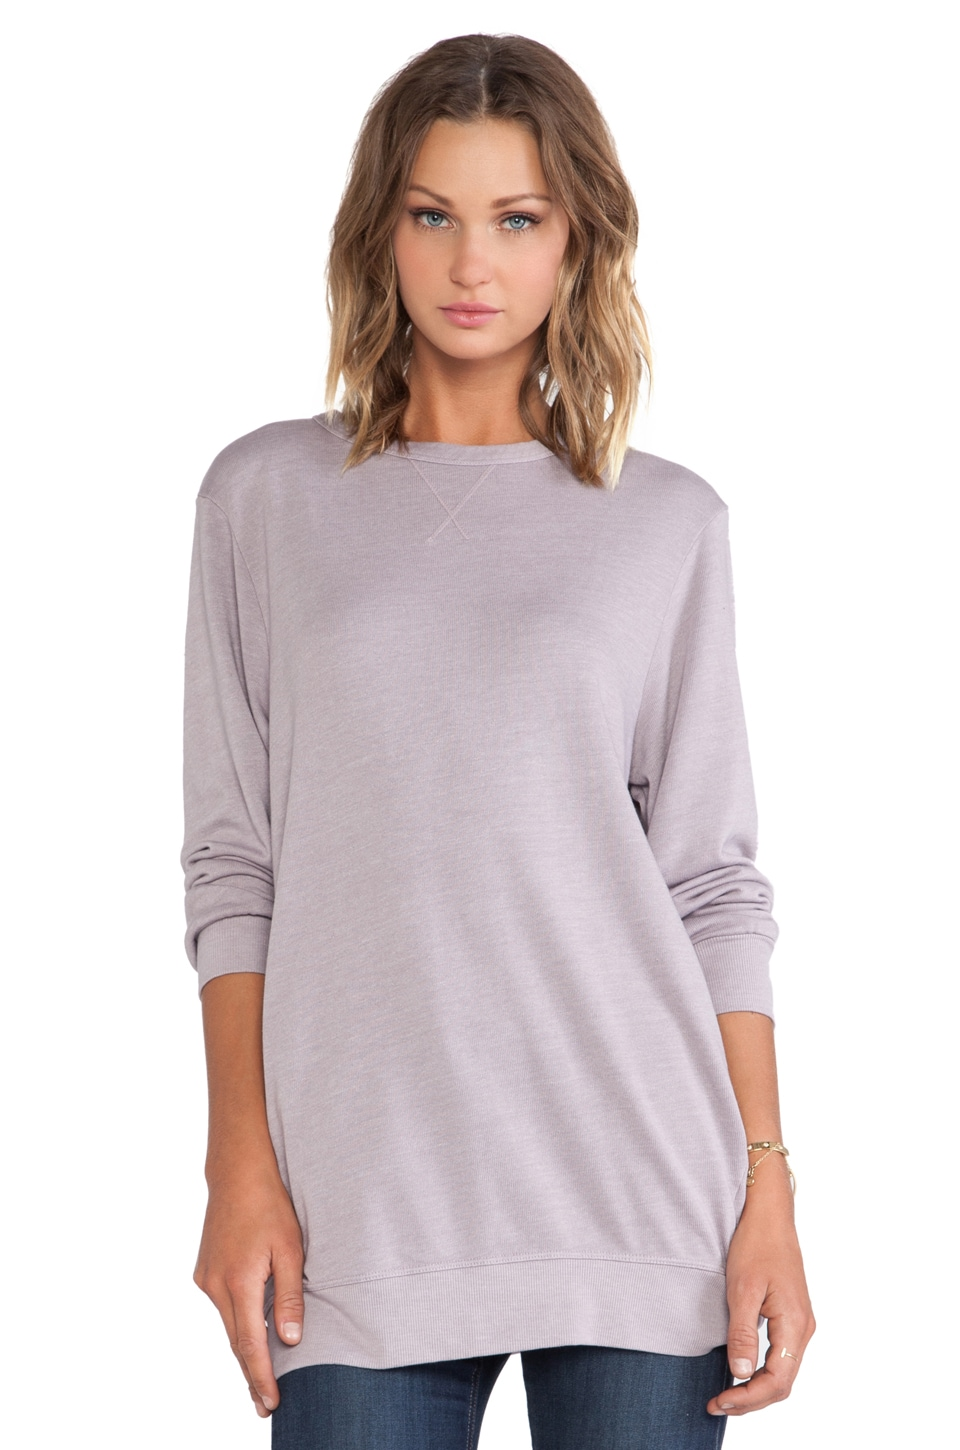 SUNDRY Long Pocket Sweatshirt in Warm Grey